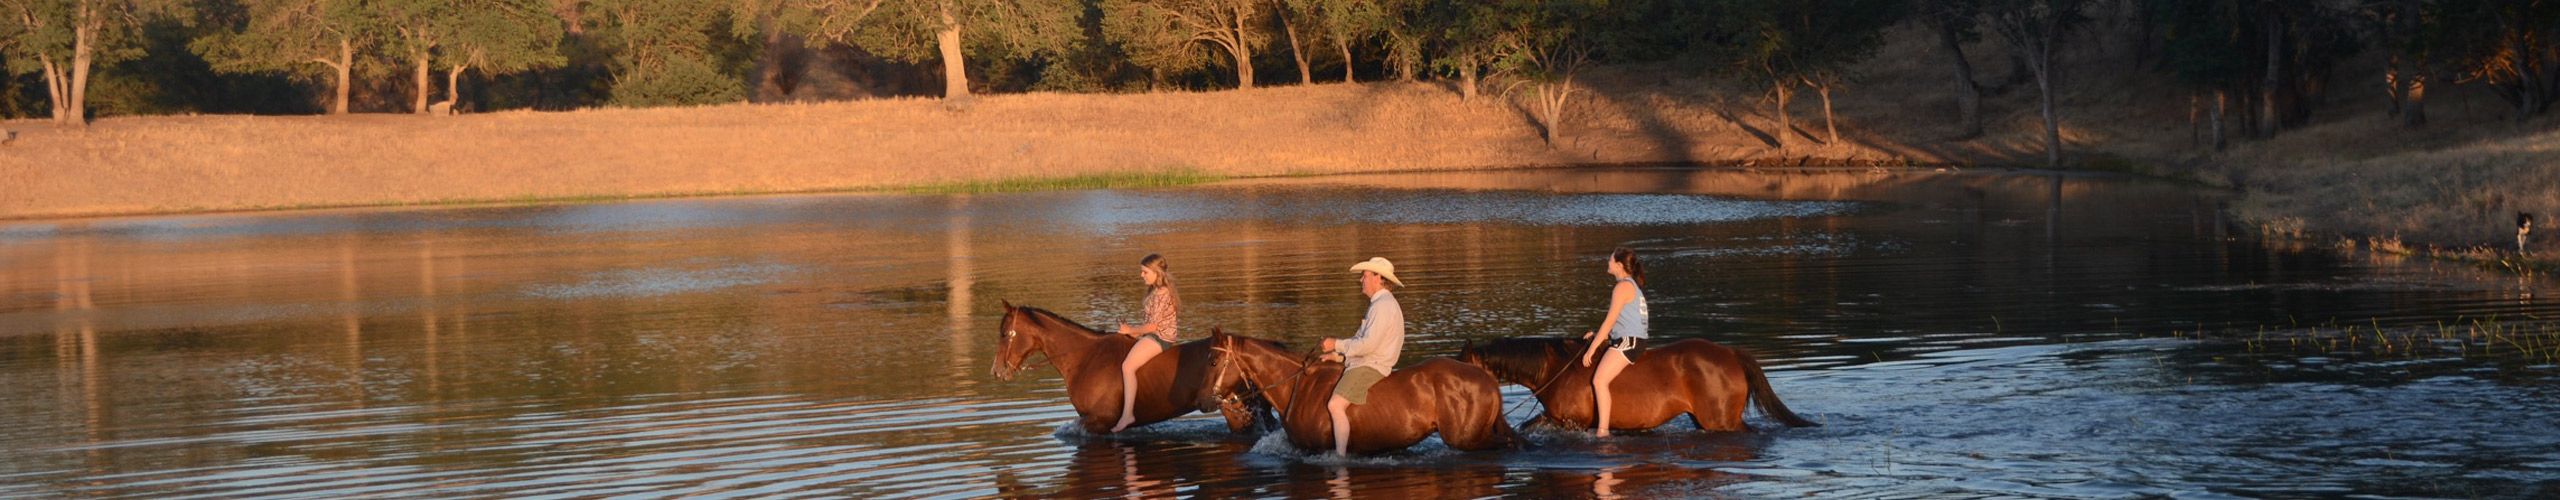 V6_Ranch_Swimming_Horses